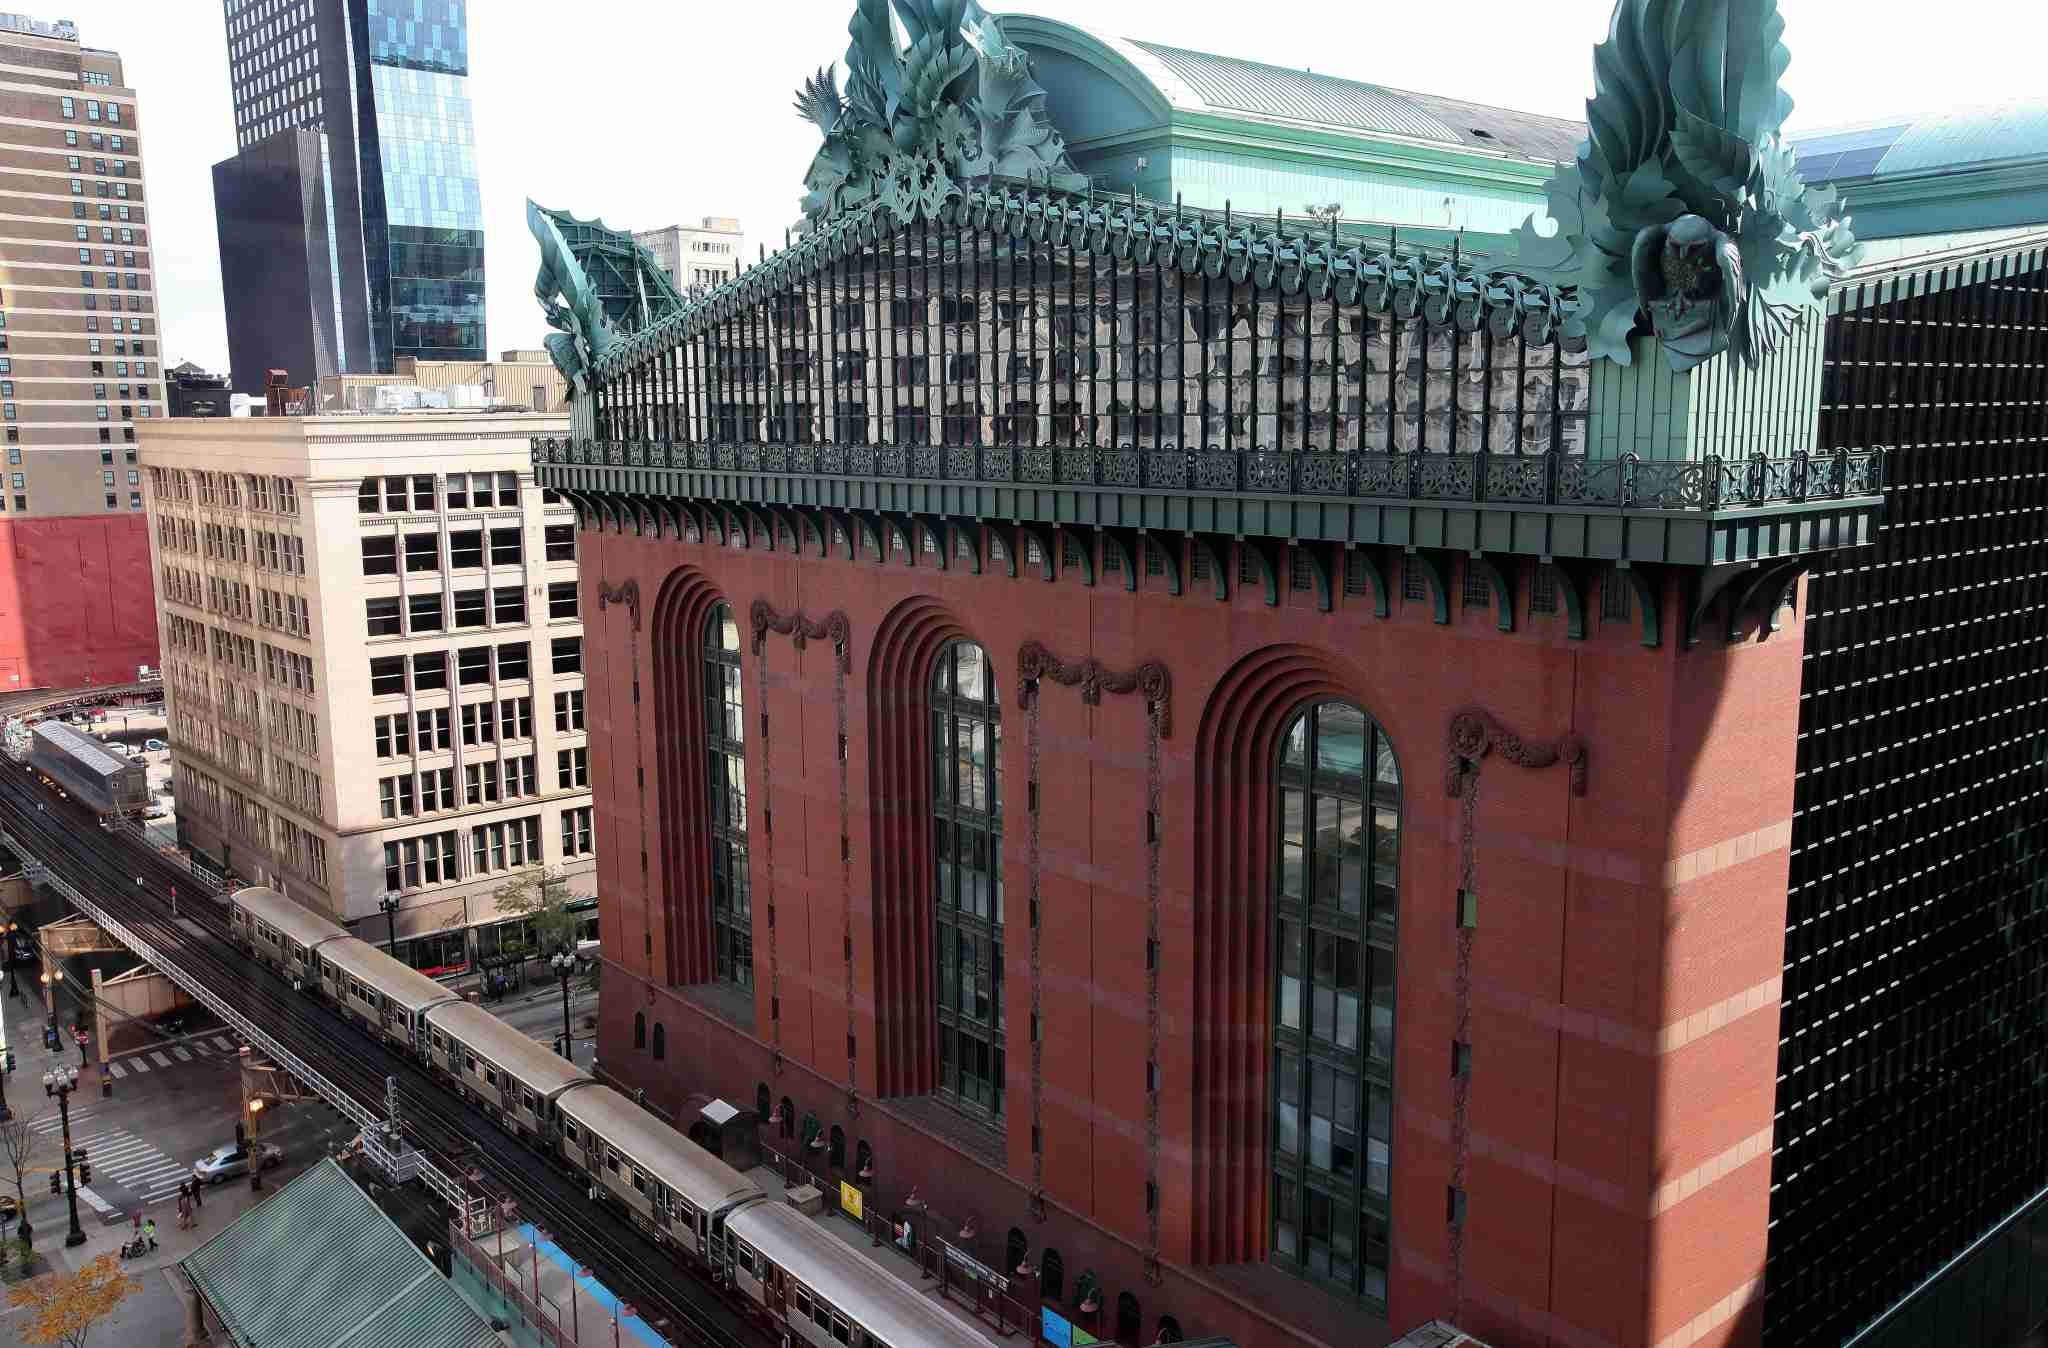 Literature and views meet at Harold Washington Library. Image courtesy of Raymond Boyd/Getty Images.